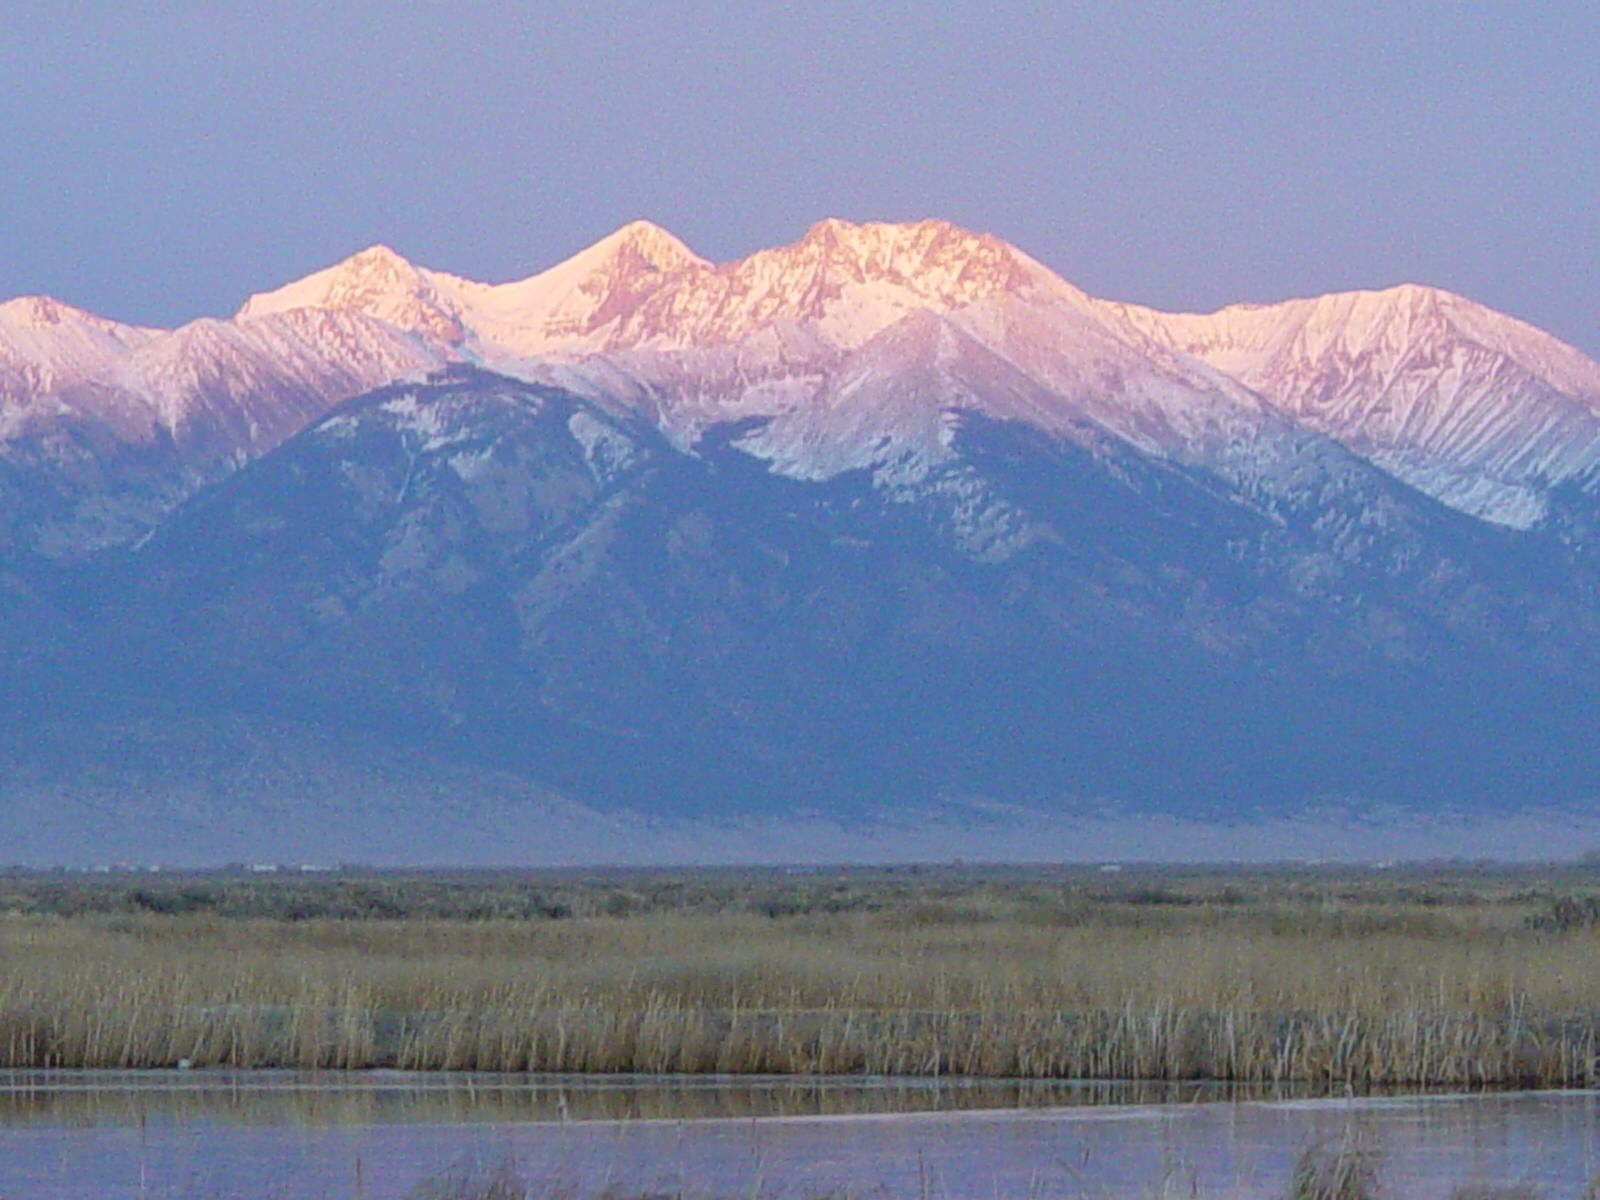 photo: Alamosa South view of Mt. Blanca. Photo by Brian DeVries.